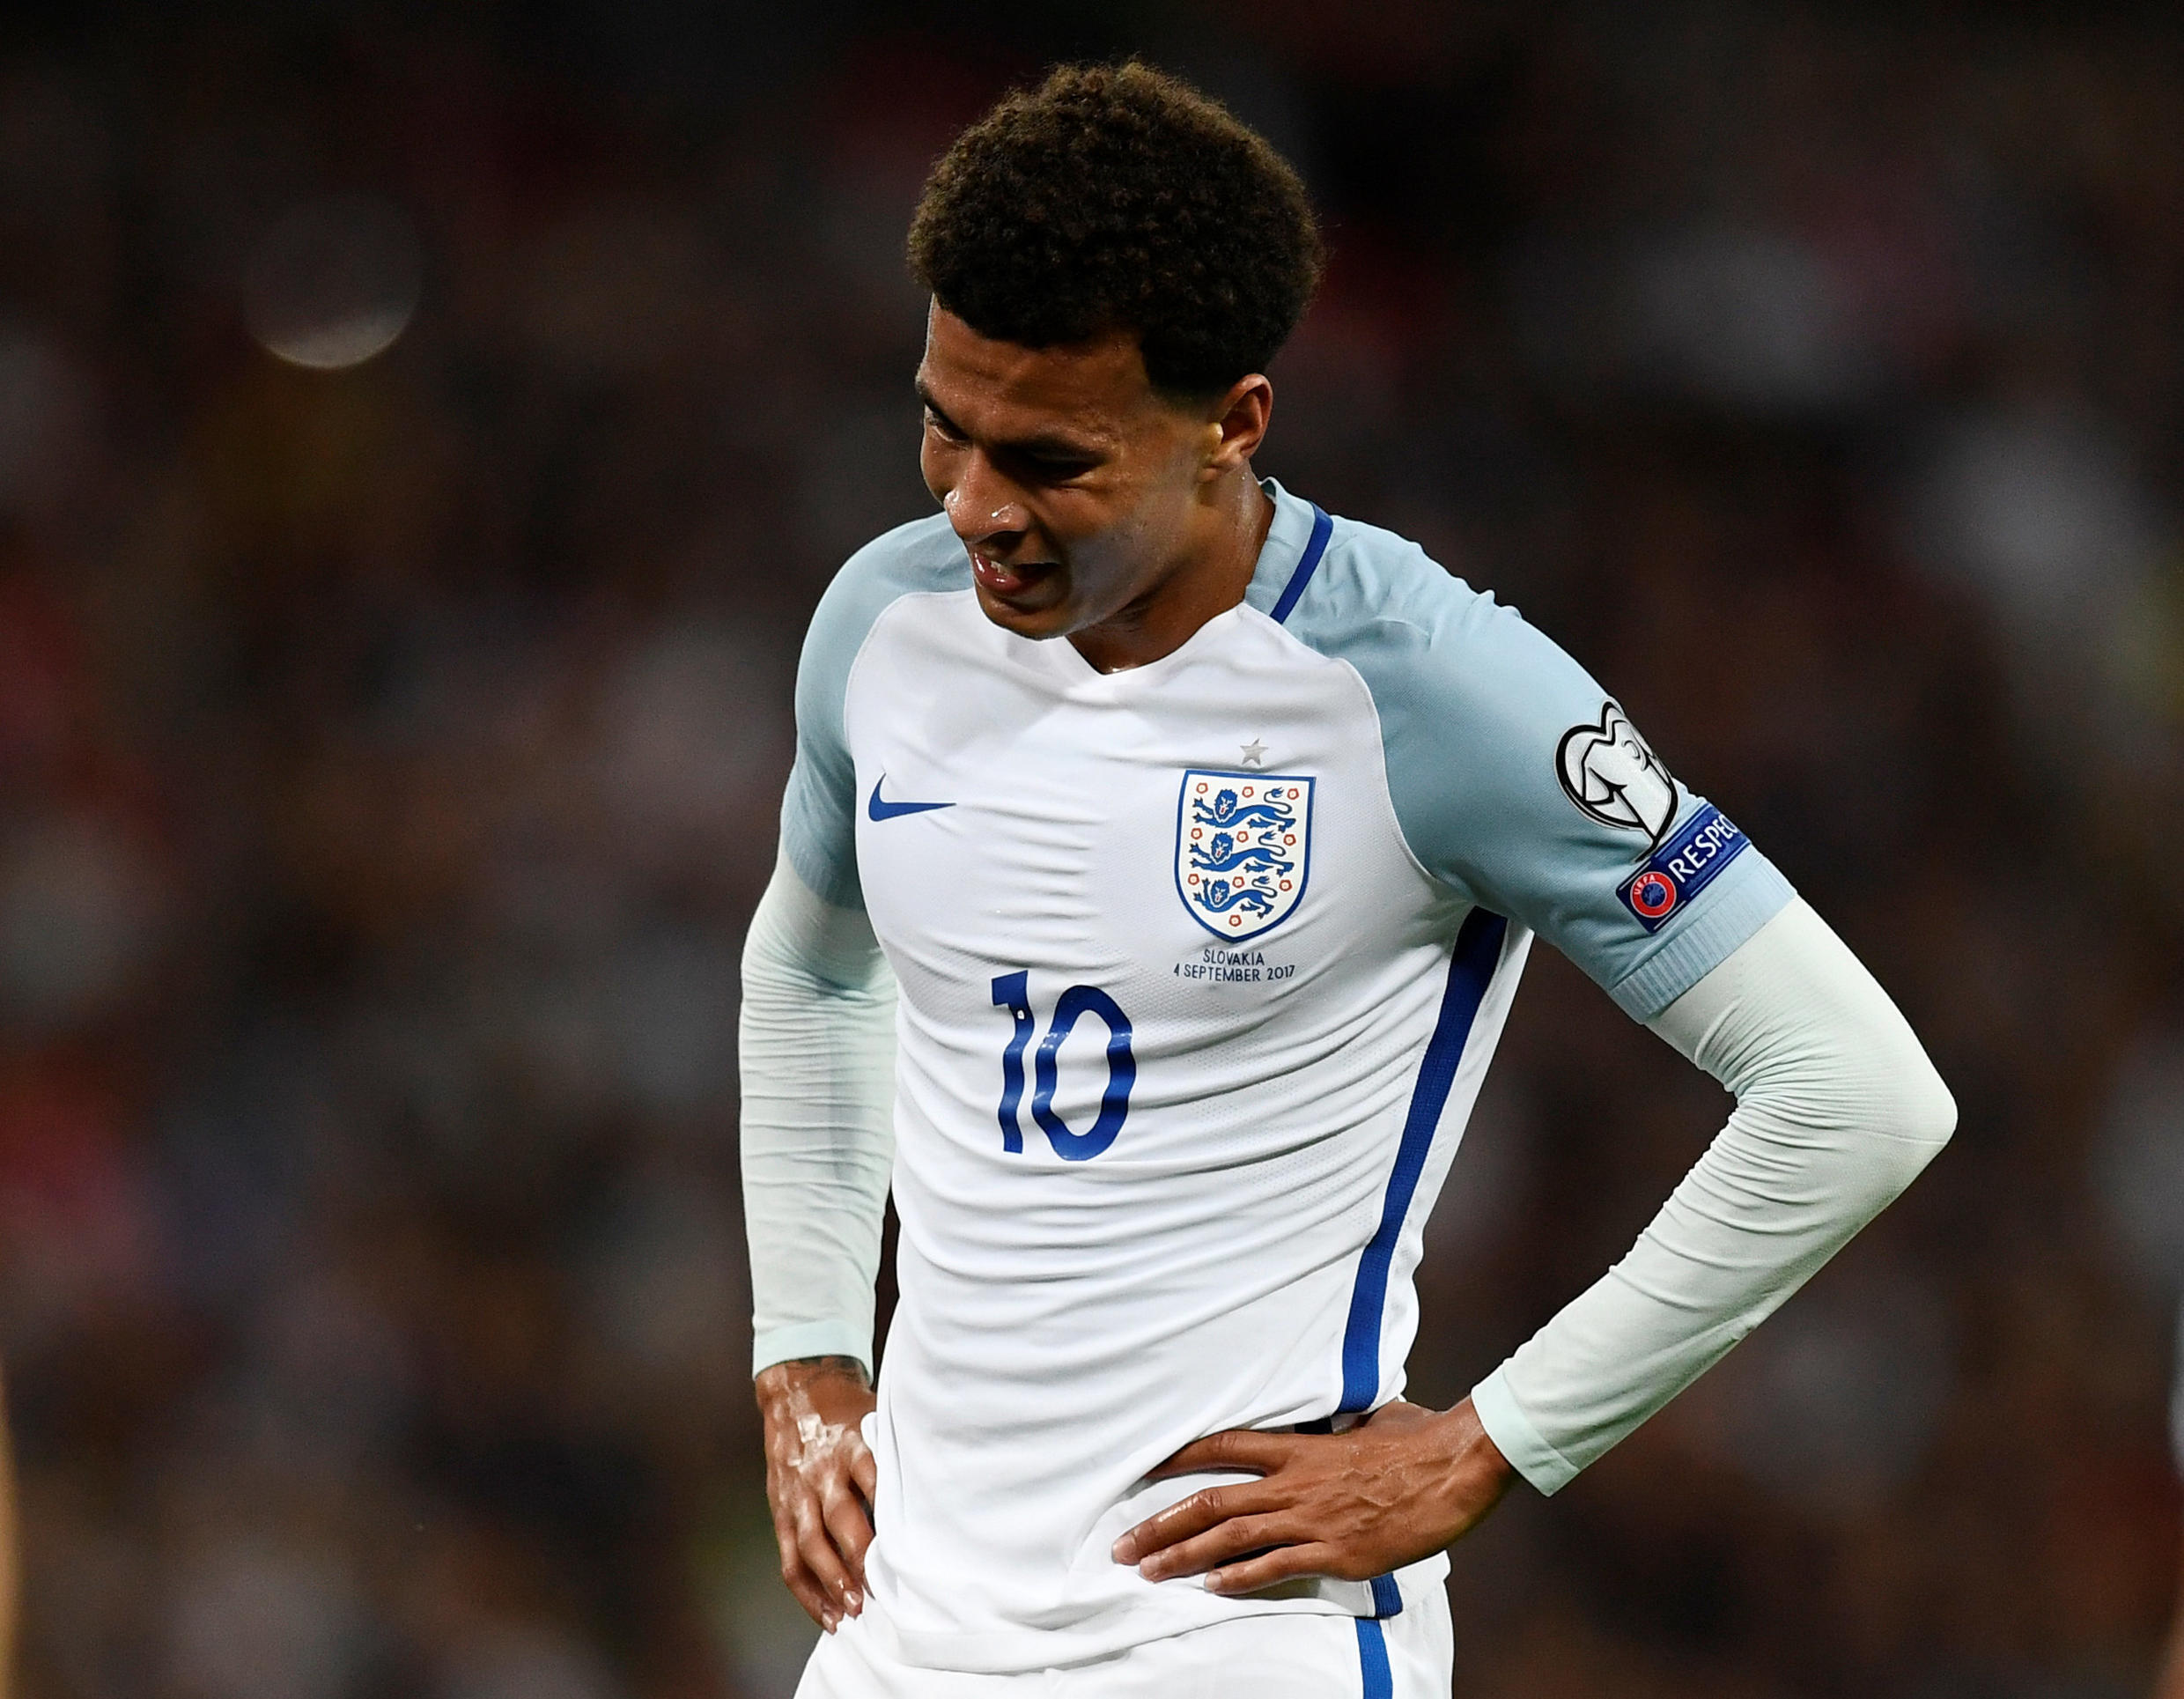 Delle Alli will be able to play in England's final Group F match on 8 October in Lithuania.